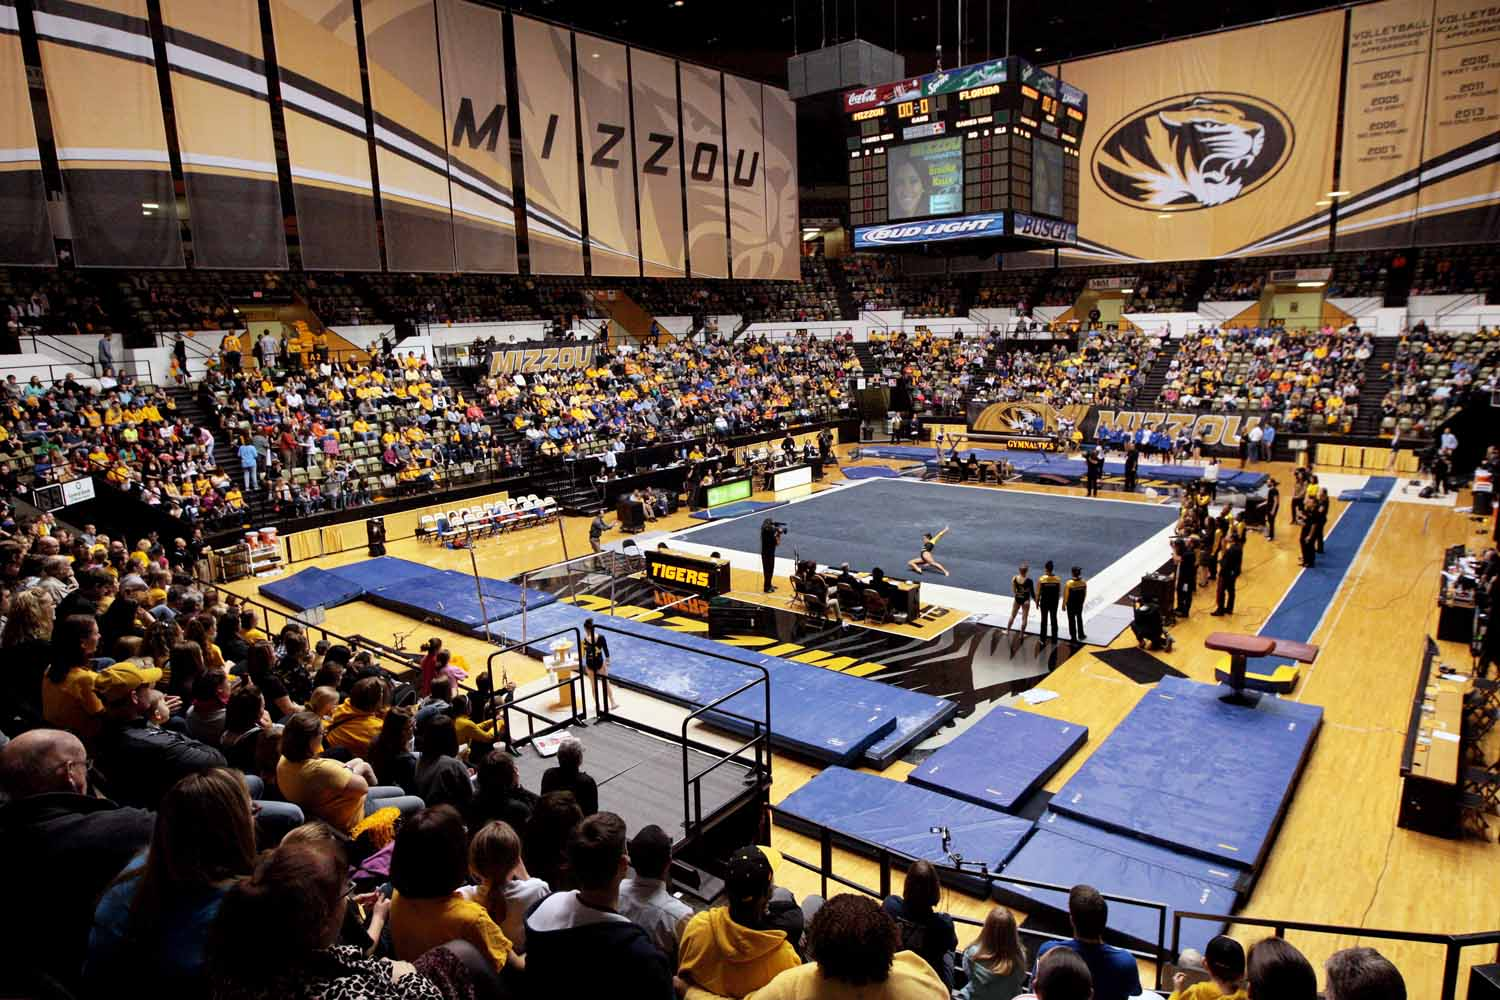 Mizzou freshman Brooke Kelly performs a floor routine at the Hearnes Center during the gymnastics competition against the University of Florida Friday evening, Feb. 19, 2016.